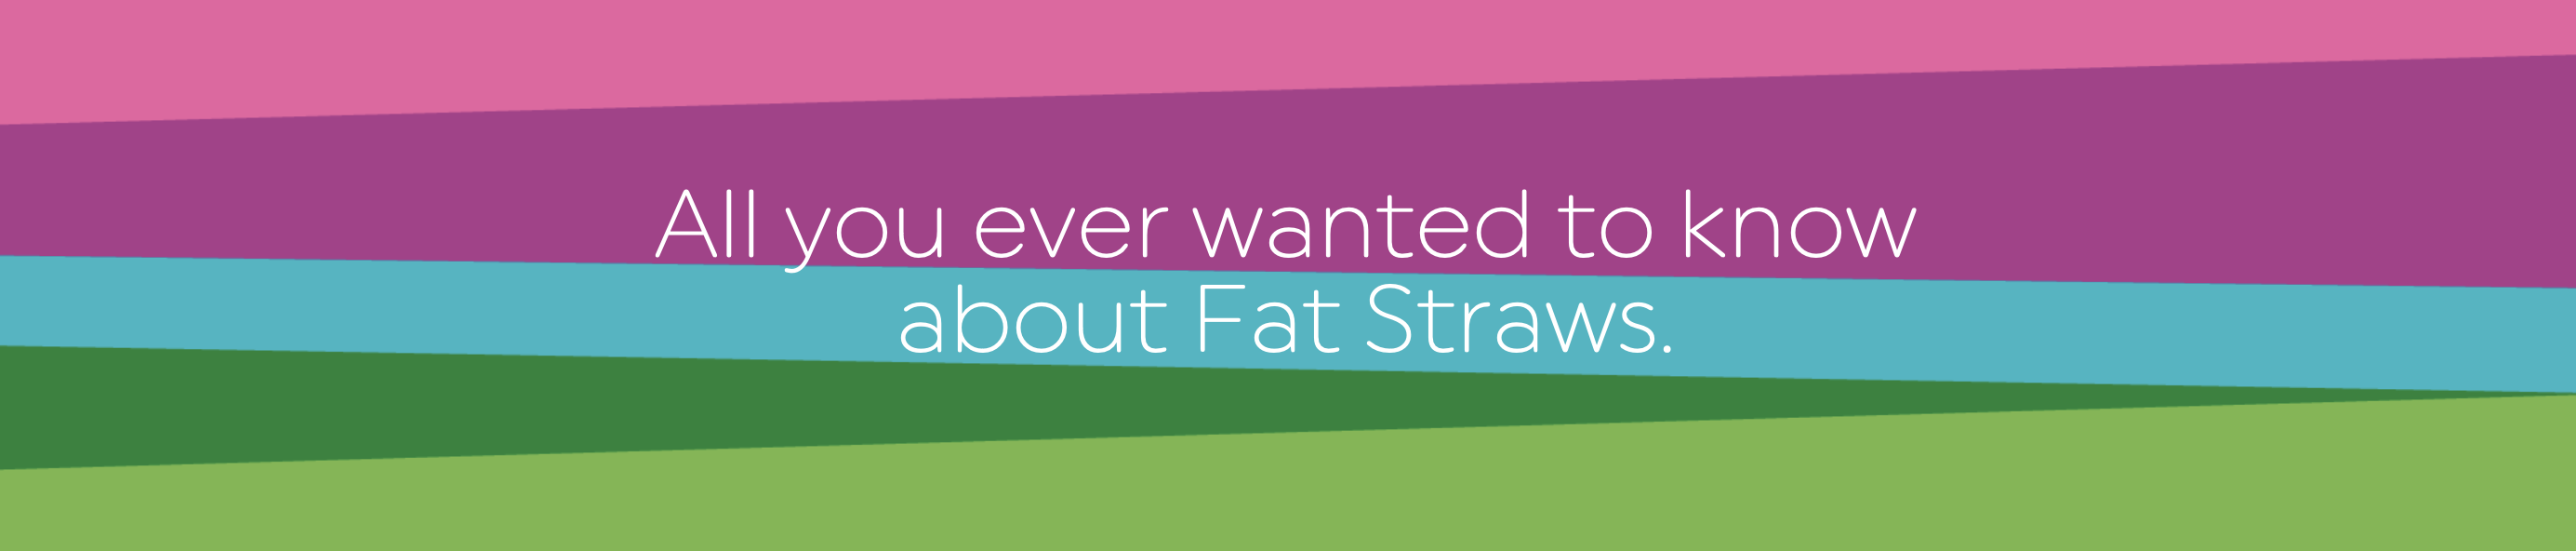 All you ever wanted to know about Fat Straws